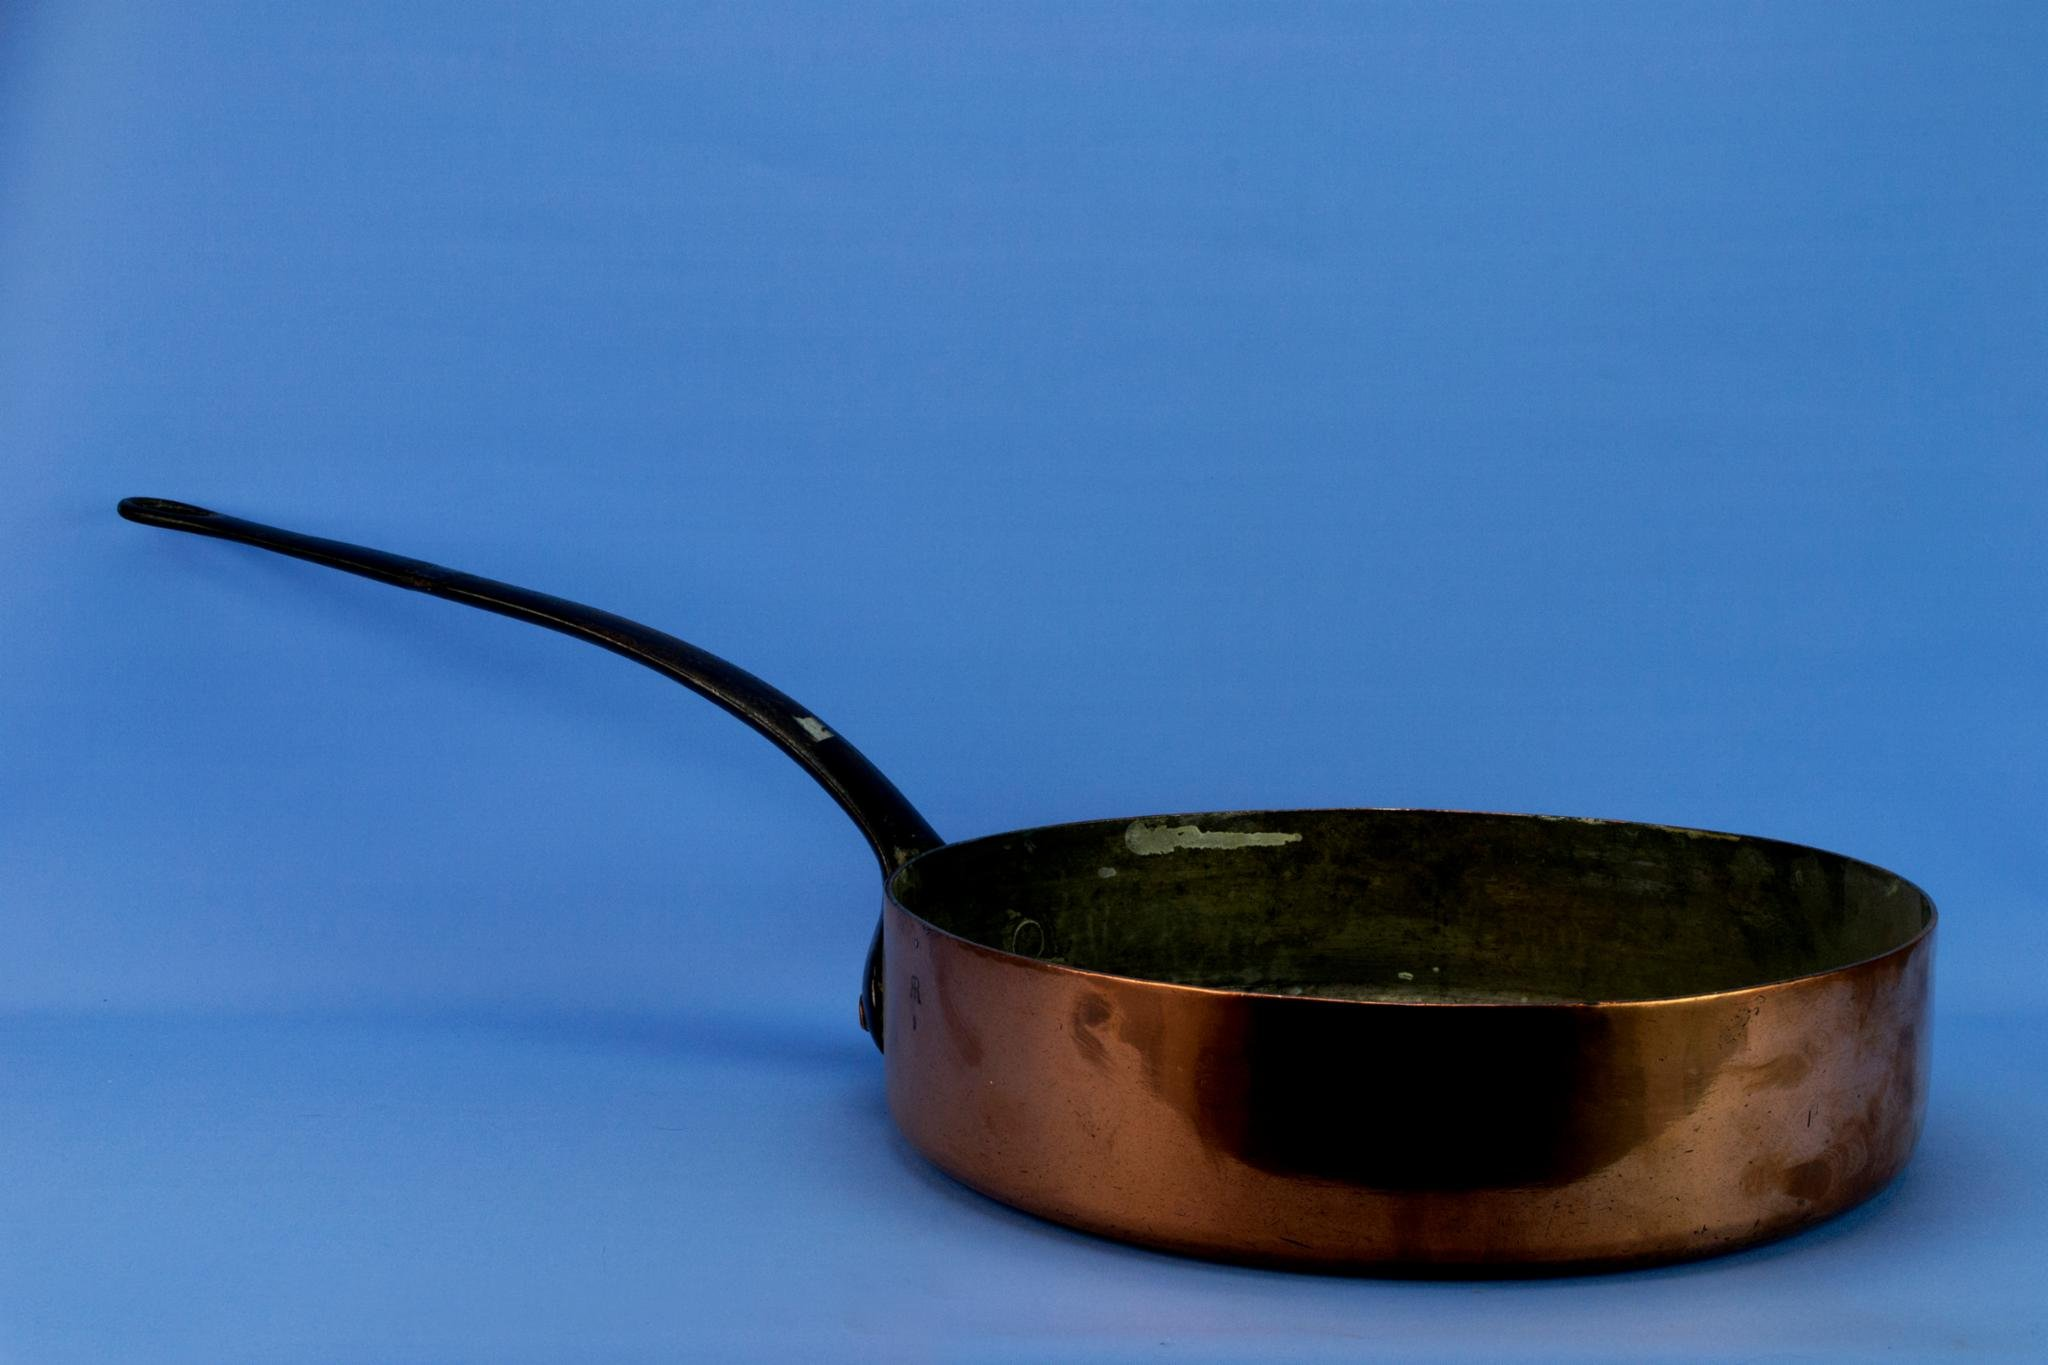 Large Copper Pan Cooking Pot Kitchen Traditional Vintage Iron Handle